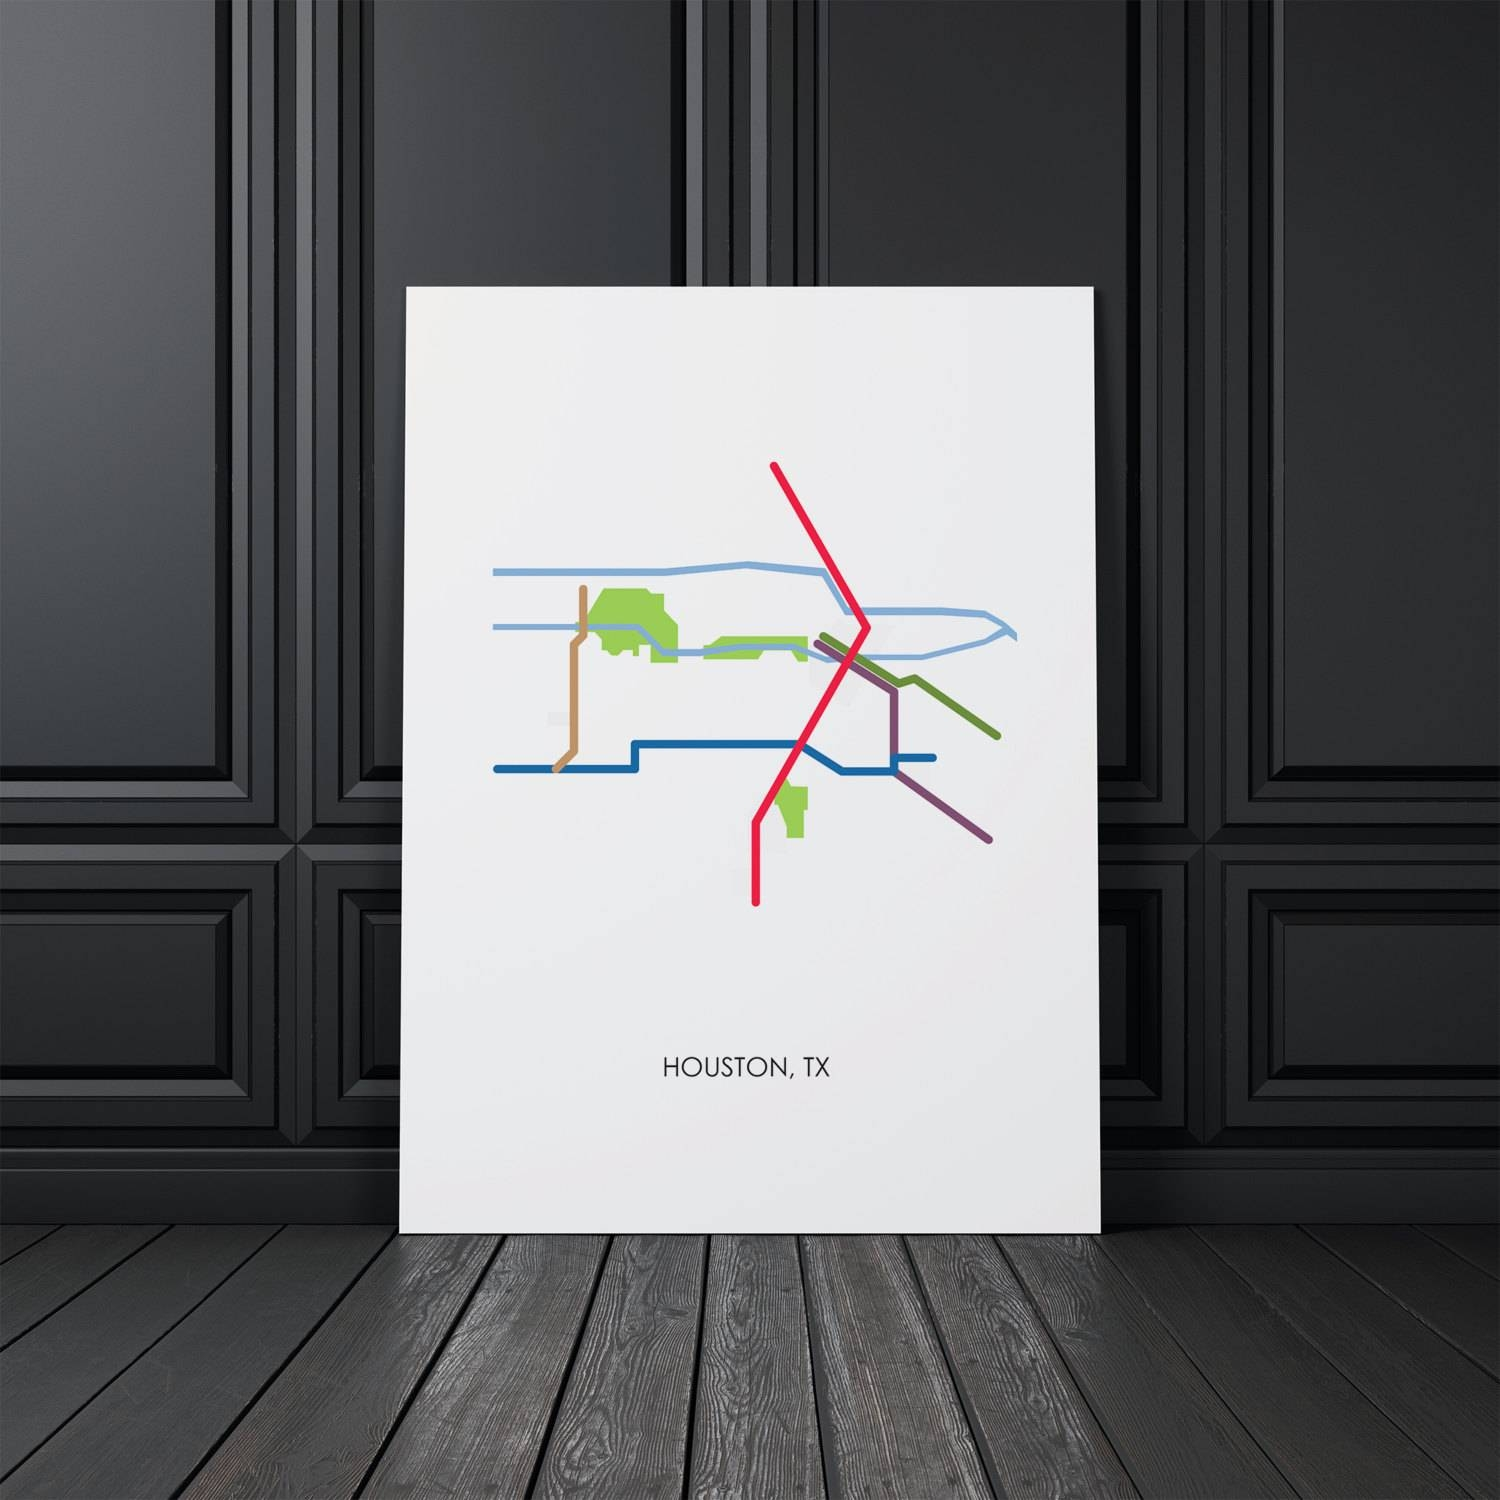 Houston Wall Art Houston Map Houston Tx Wall Art Map Art Within 2018 Houston Map Wall Art (Gallery 12 of 20)